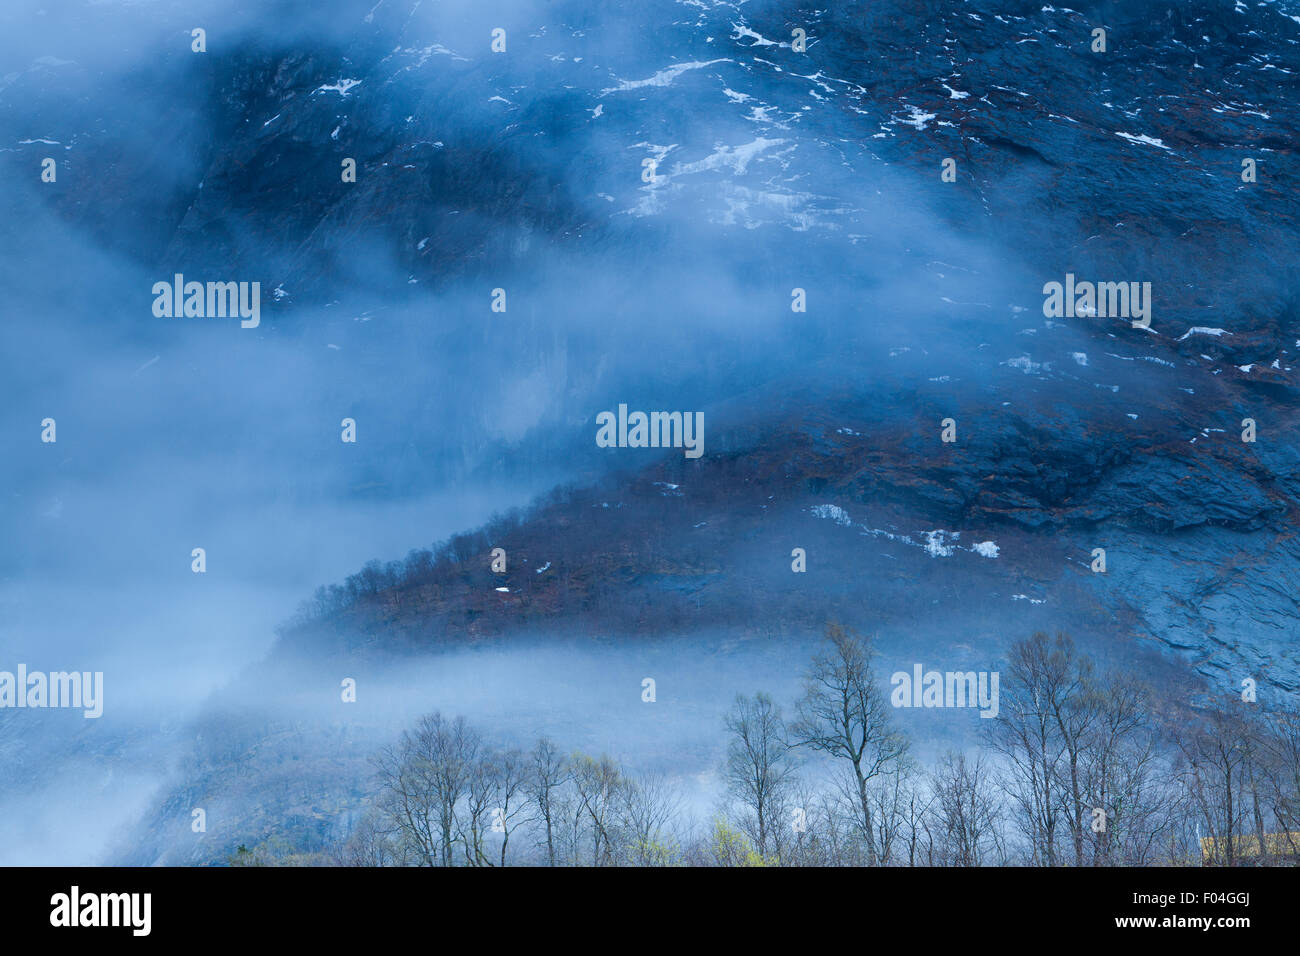 Early morning mist around the mountainsides in the Romsdalen valley, Norway. - Stock Image